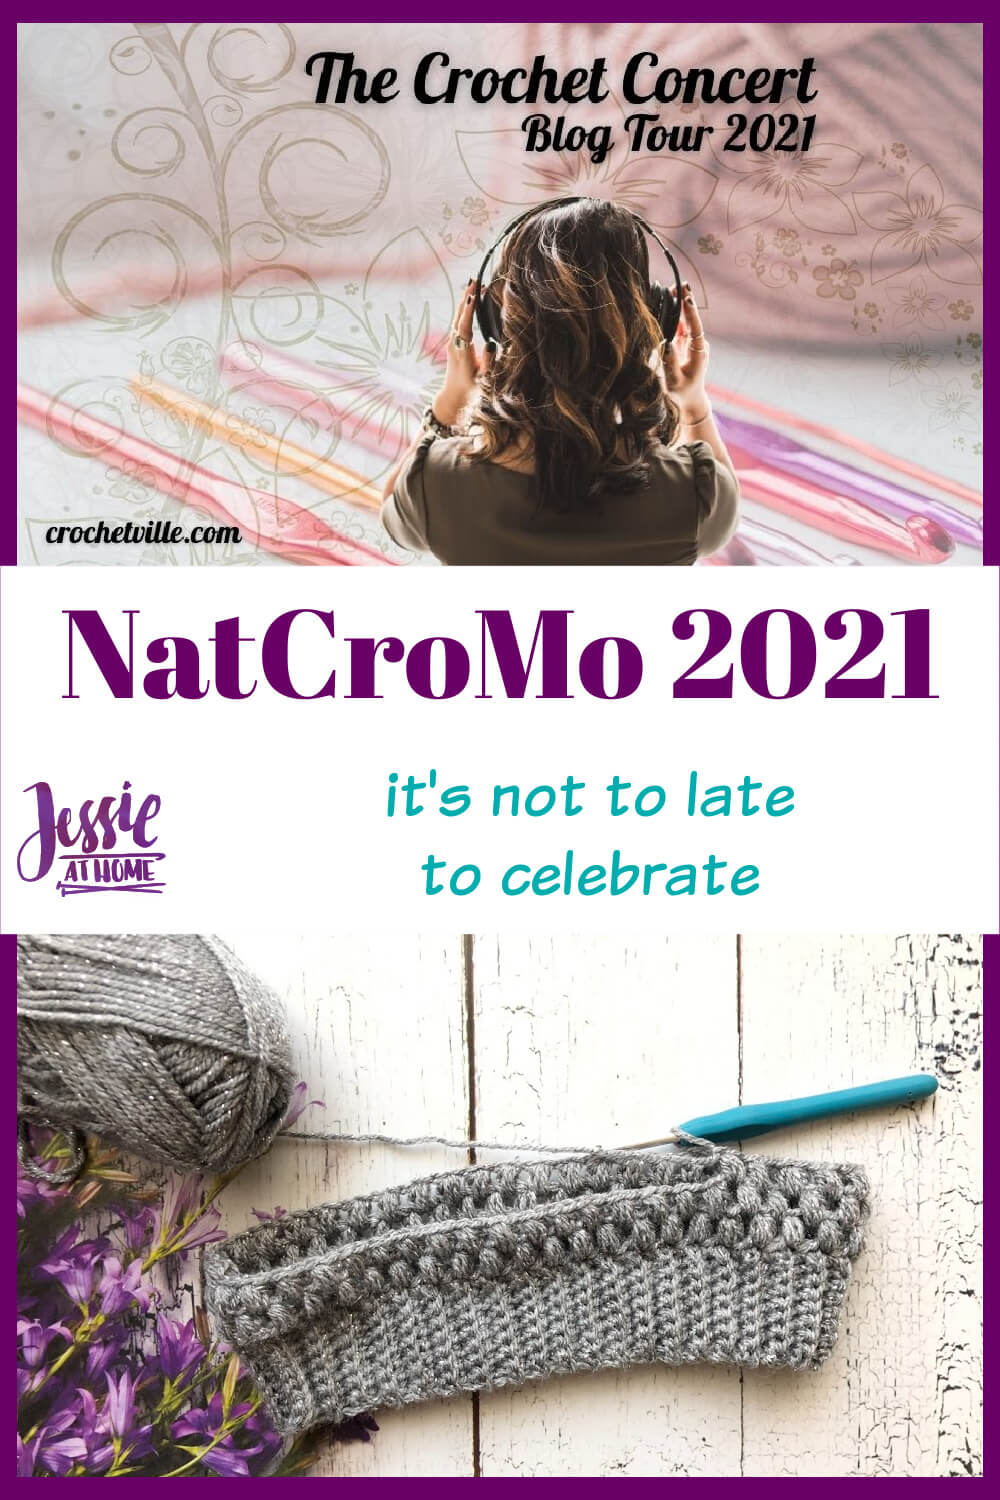 NatCroMo 2021 isn\'t over yet; it\'s time to celebrate At Home!